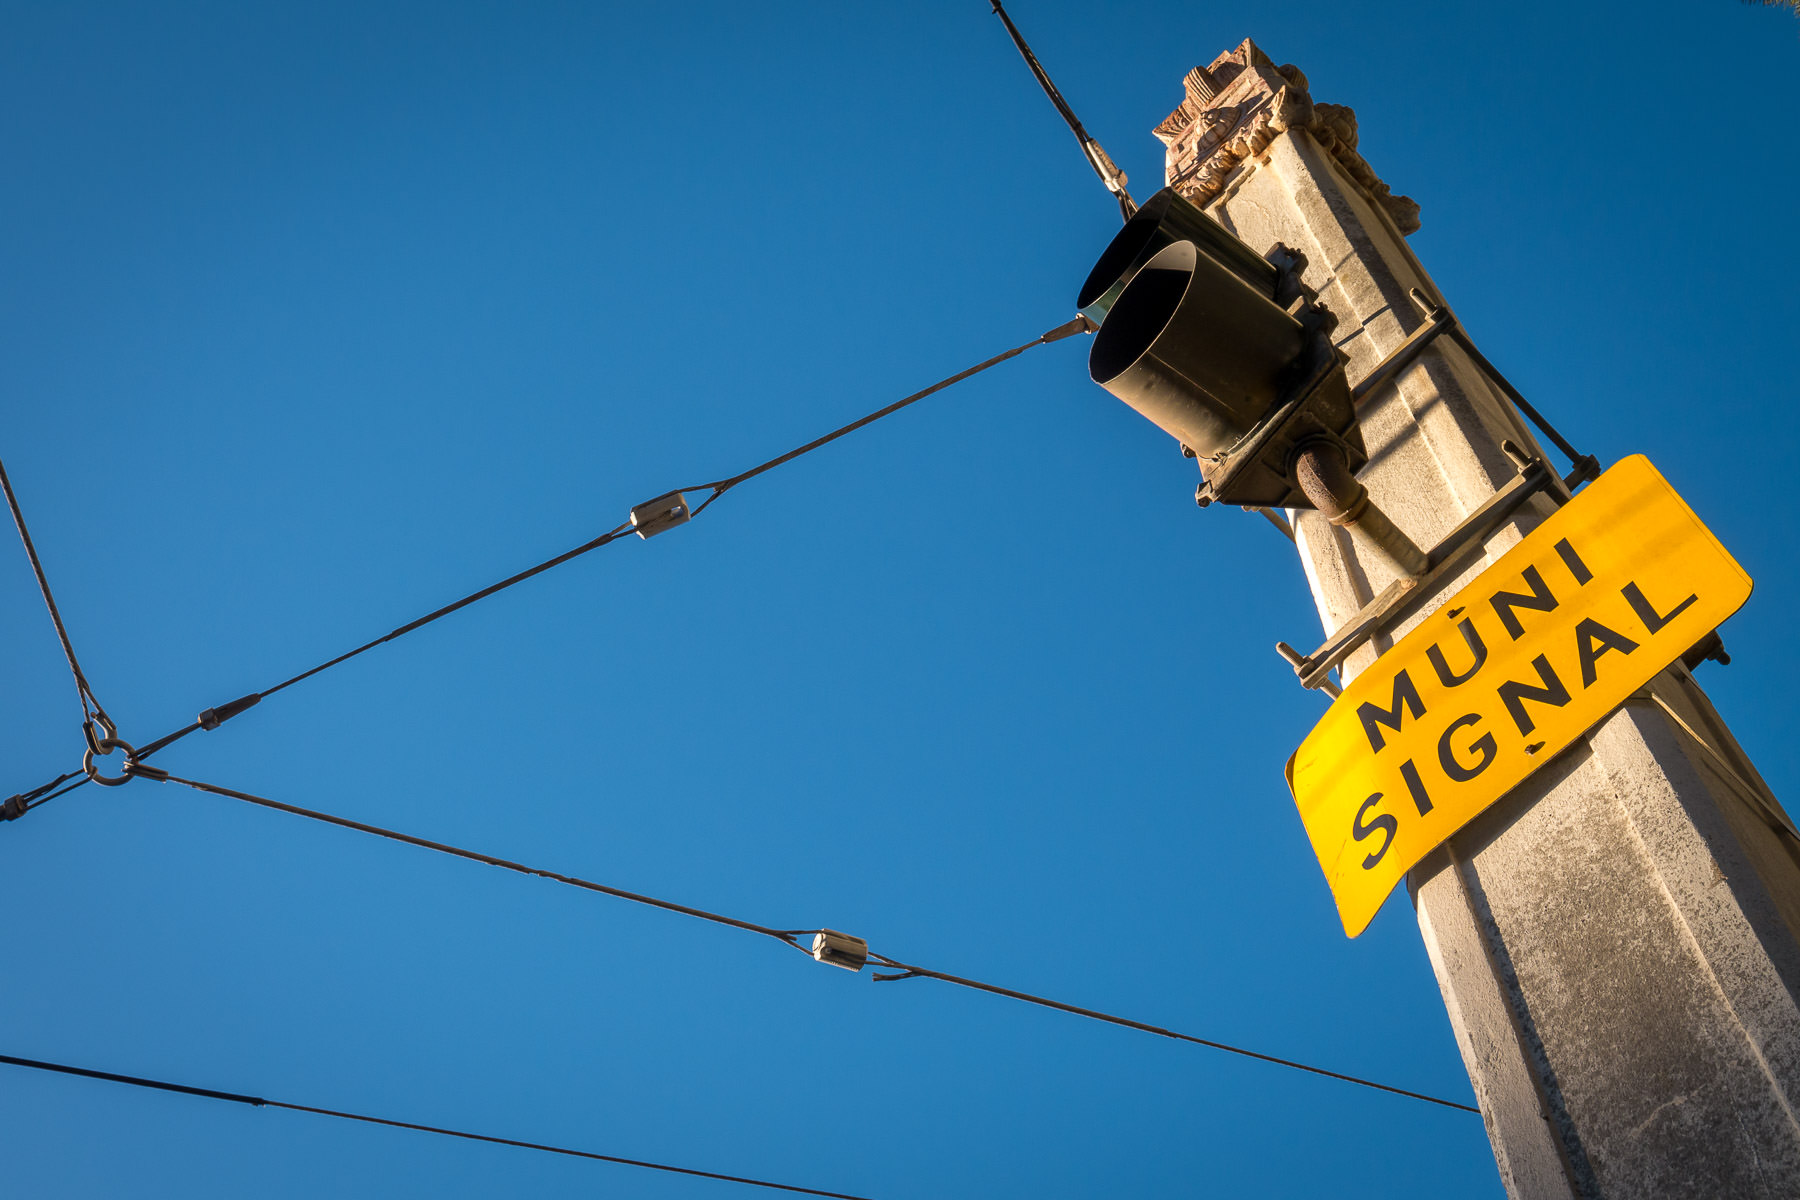 A street pole supporting overhead wires for trolley buses operated by San Francisco's public transit agency, Muni.